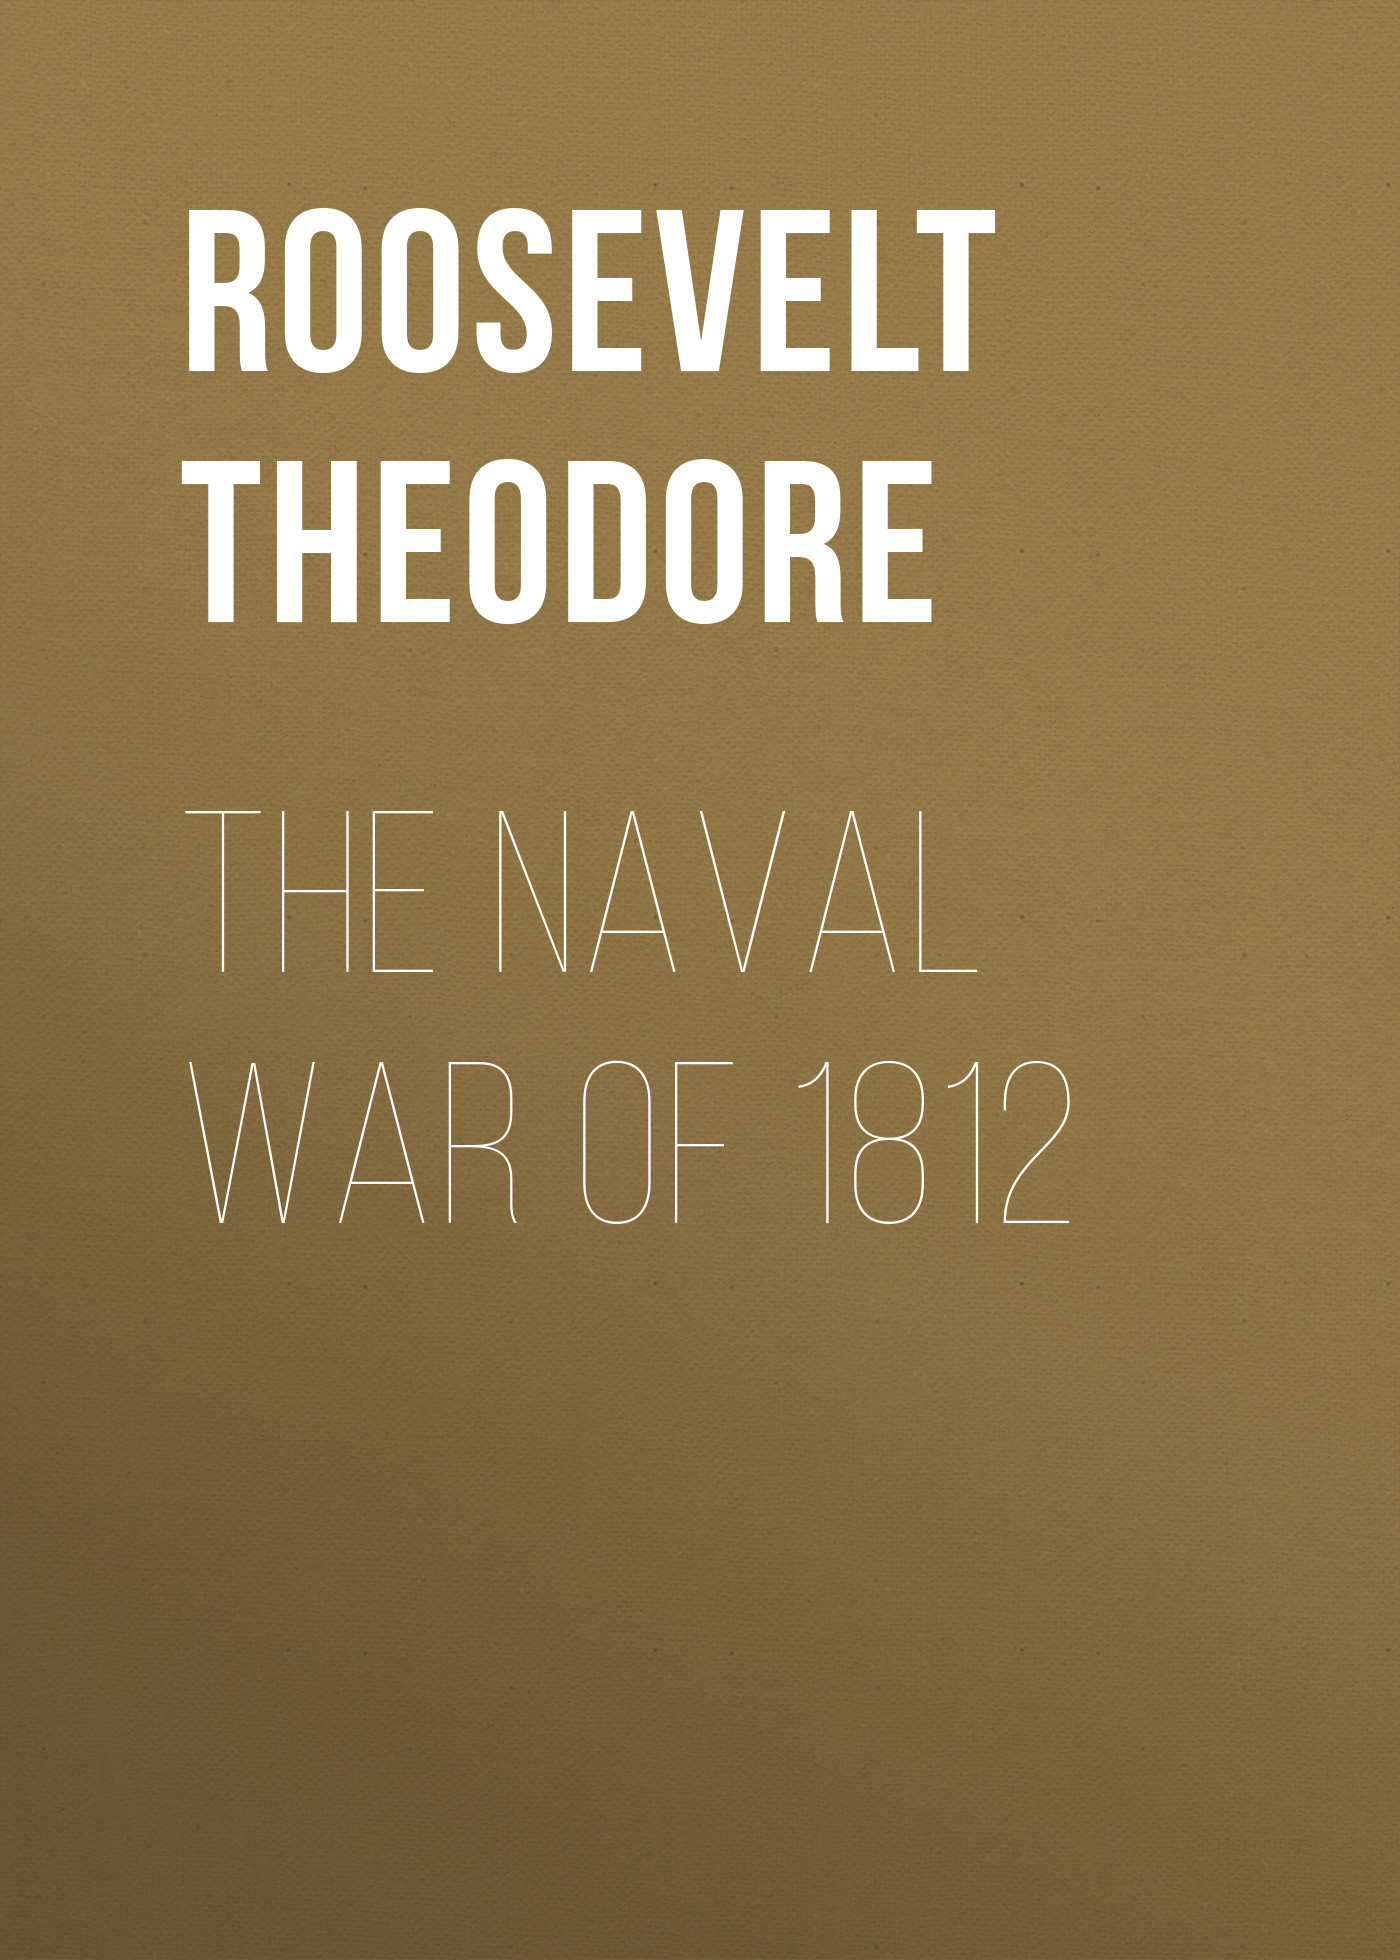 Roosevelt Theodore The Naval War of 1812 my brother theodore roosevelt